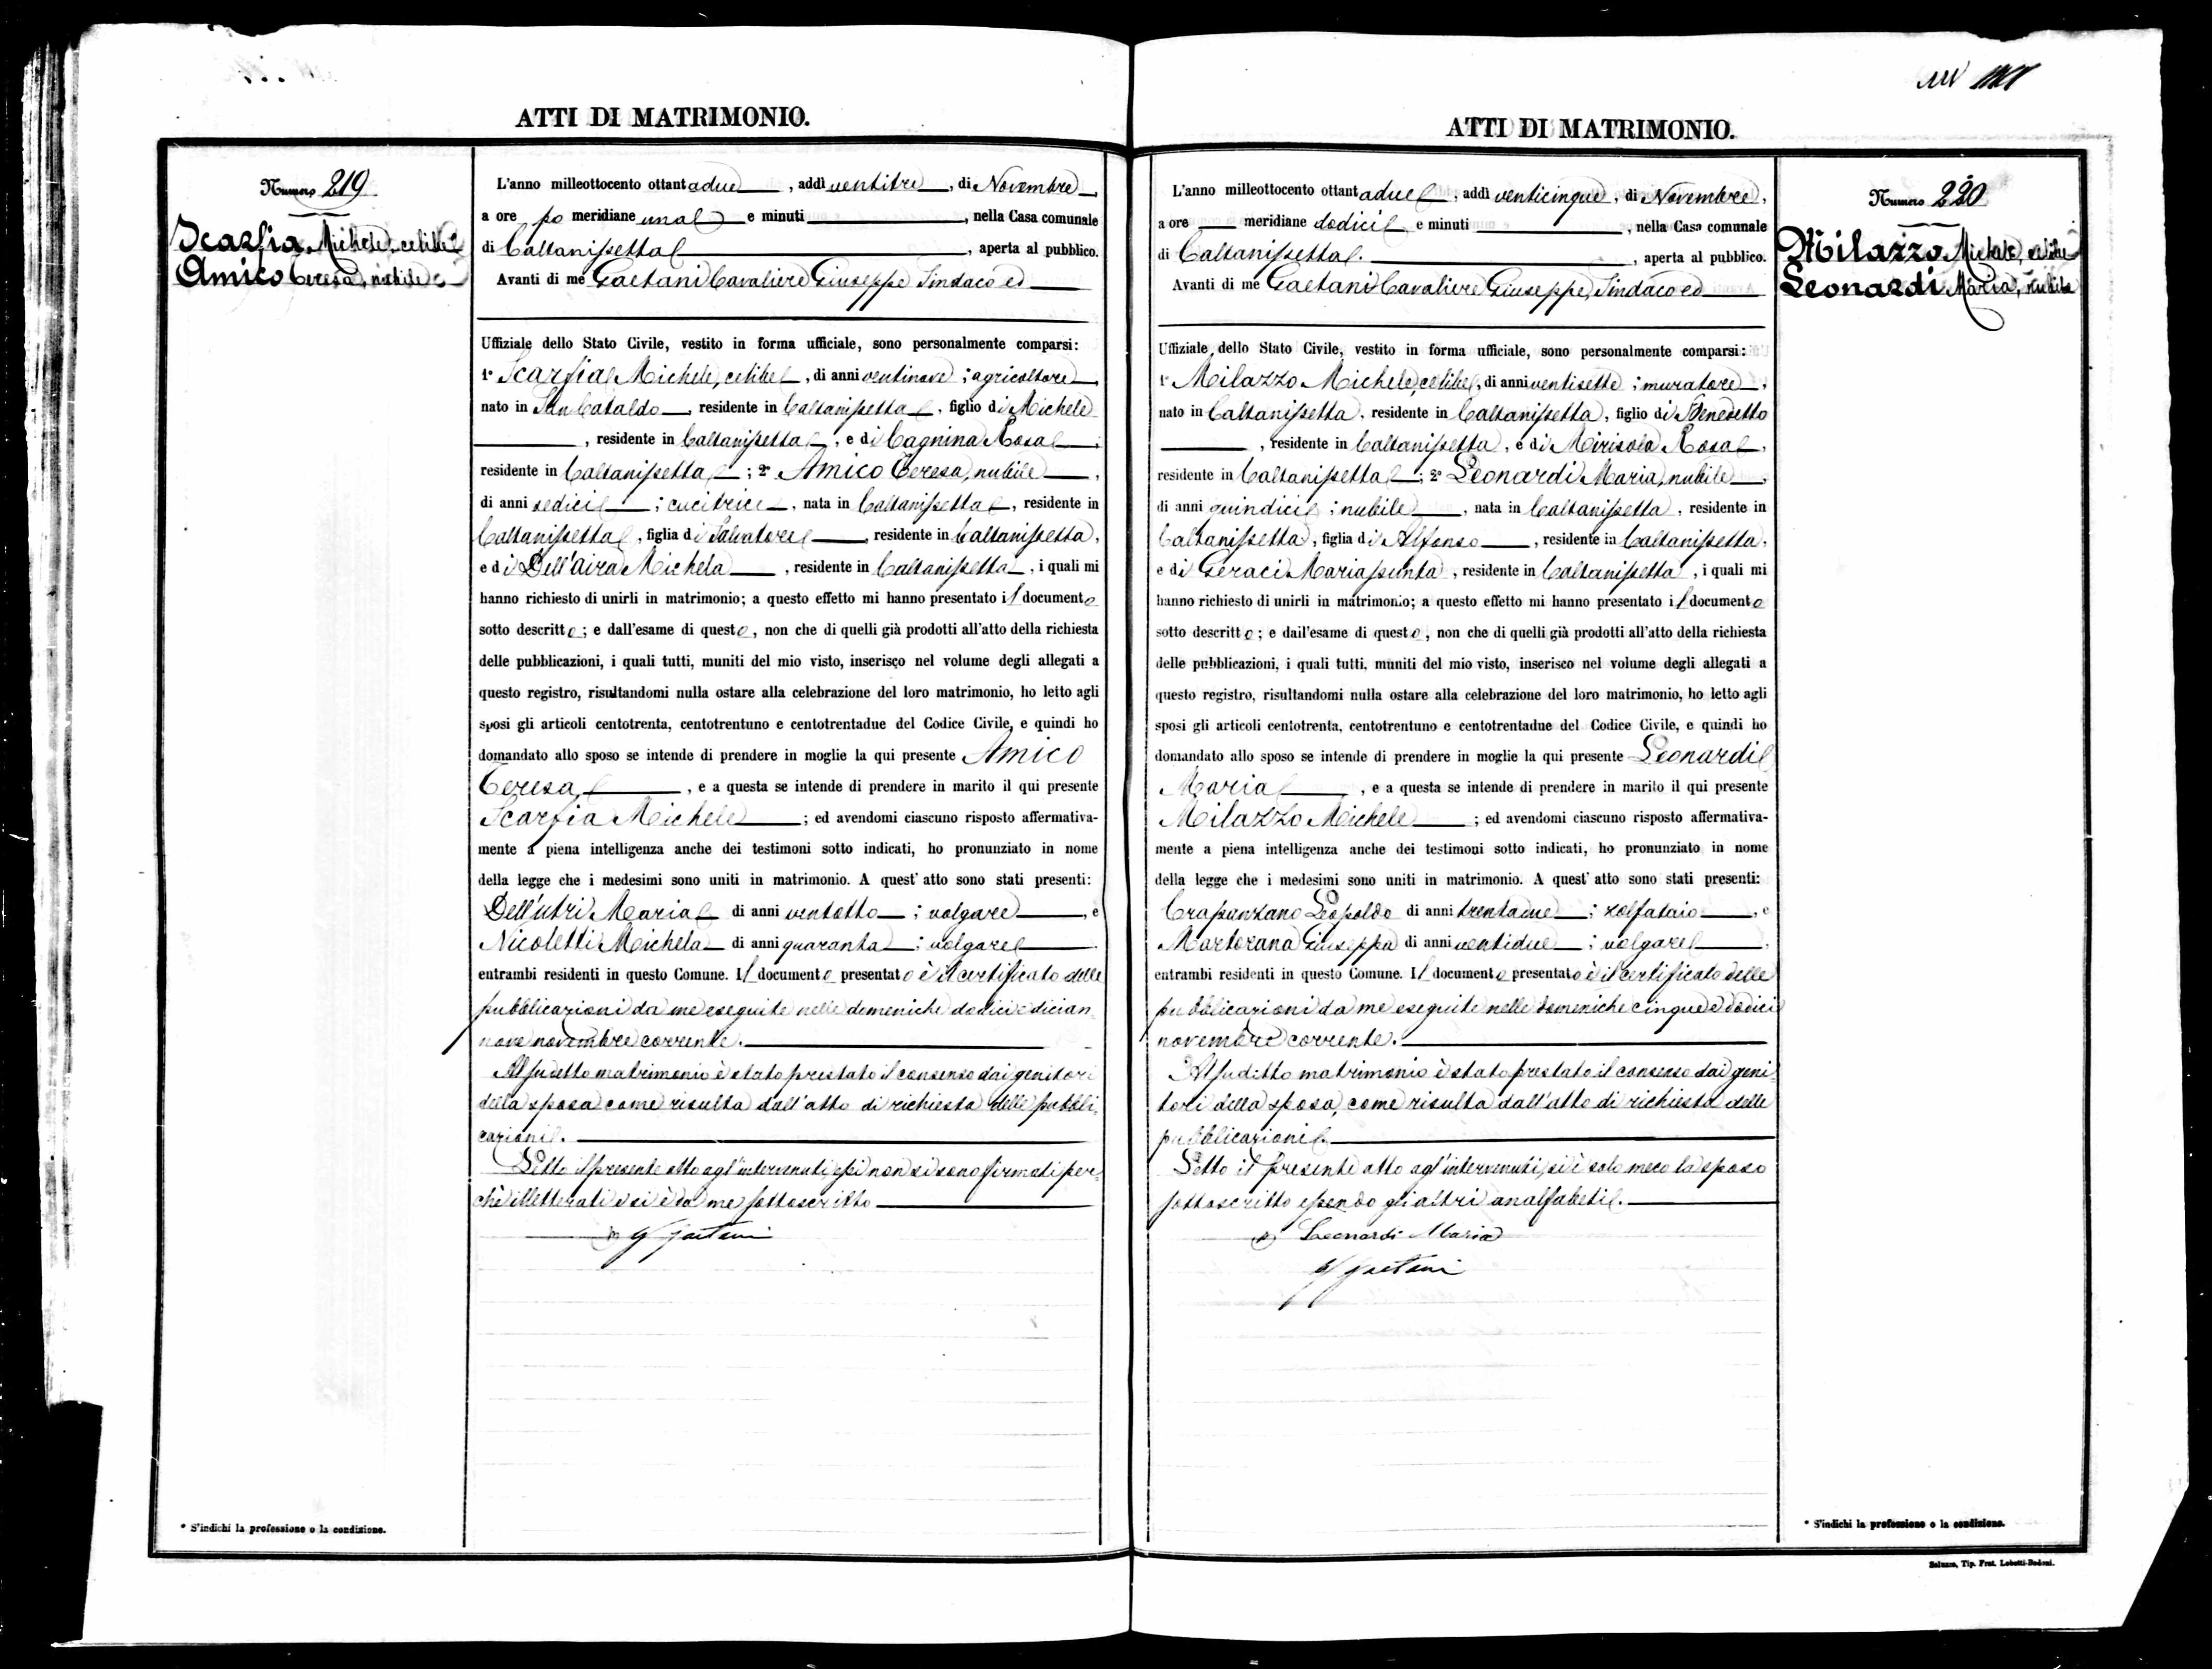 Marriage document for Michael Scarfia & Theresa Amico 1882 Caltanissetta.jpg